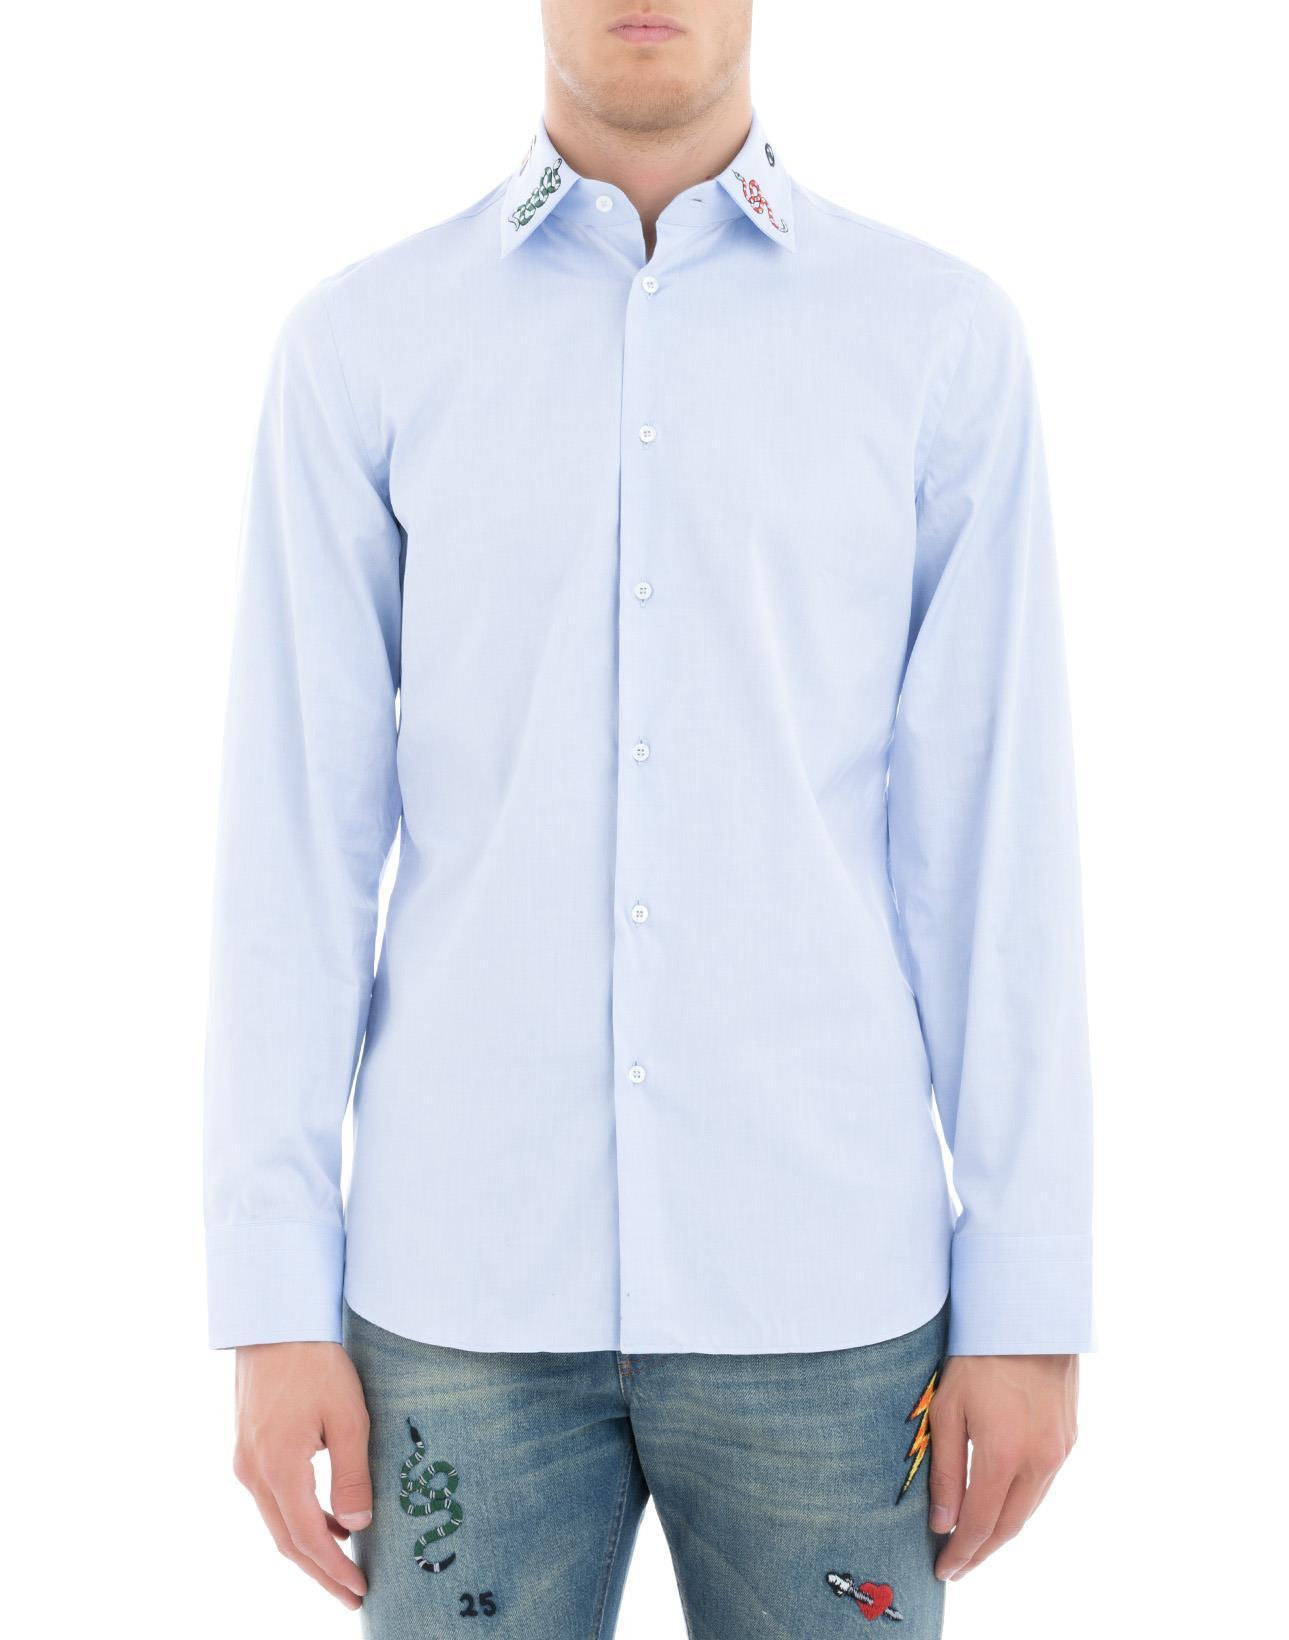 ae4118942 Gucci Embroidered Collar Shirt in Blue for Men - Lyst